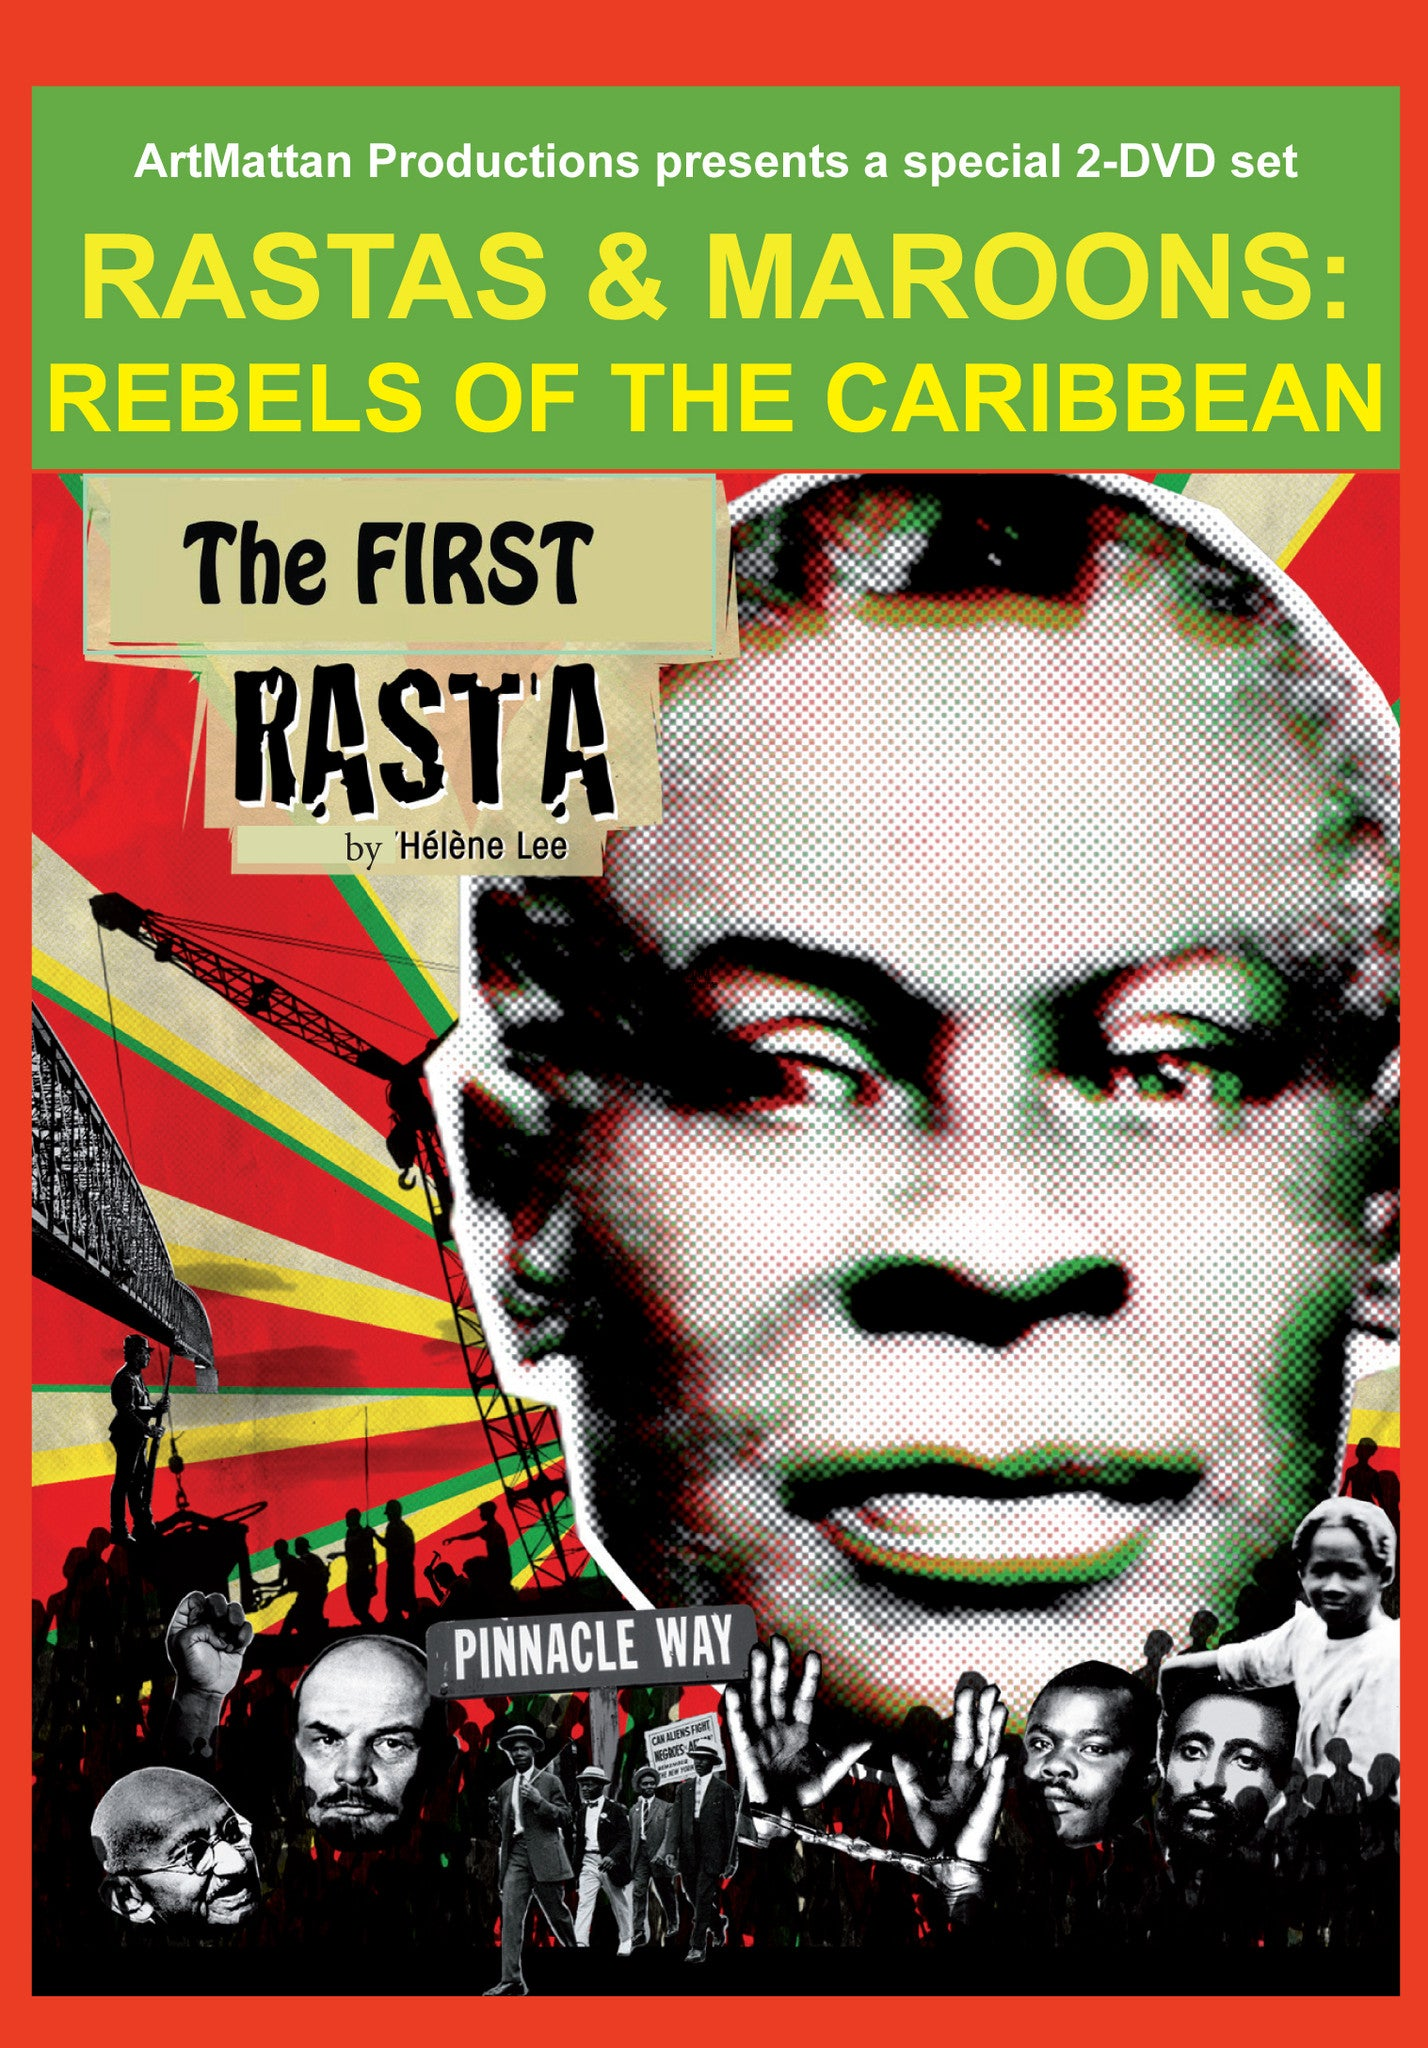 Rastas & Maroons: Rebels of the Caribbeans